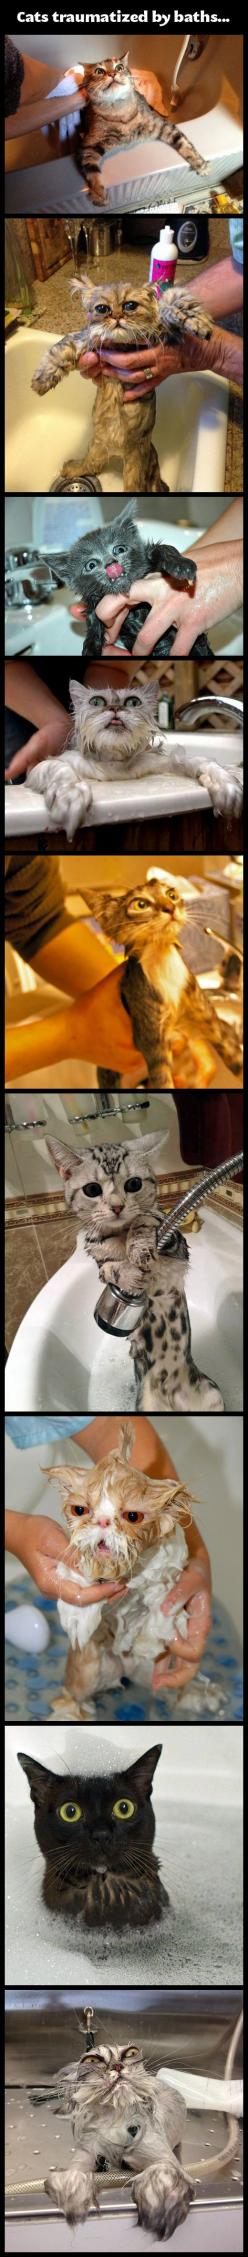 September 5, 2013: Kitty Cat, Cat Bath, Animals Meme, Funny Cats, Cats Traumatized, Cat Fail, Funny Animal Meme